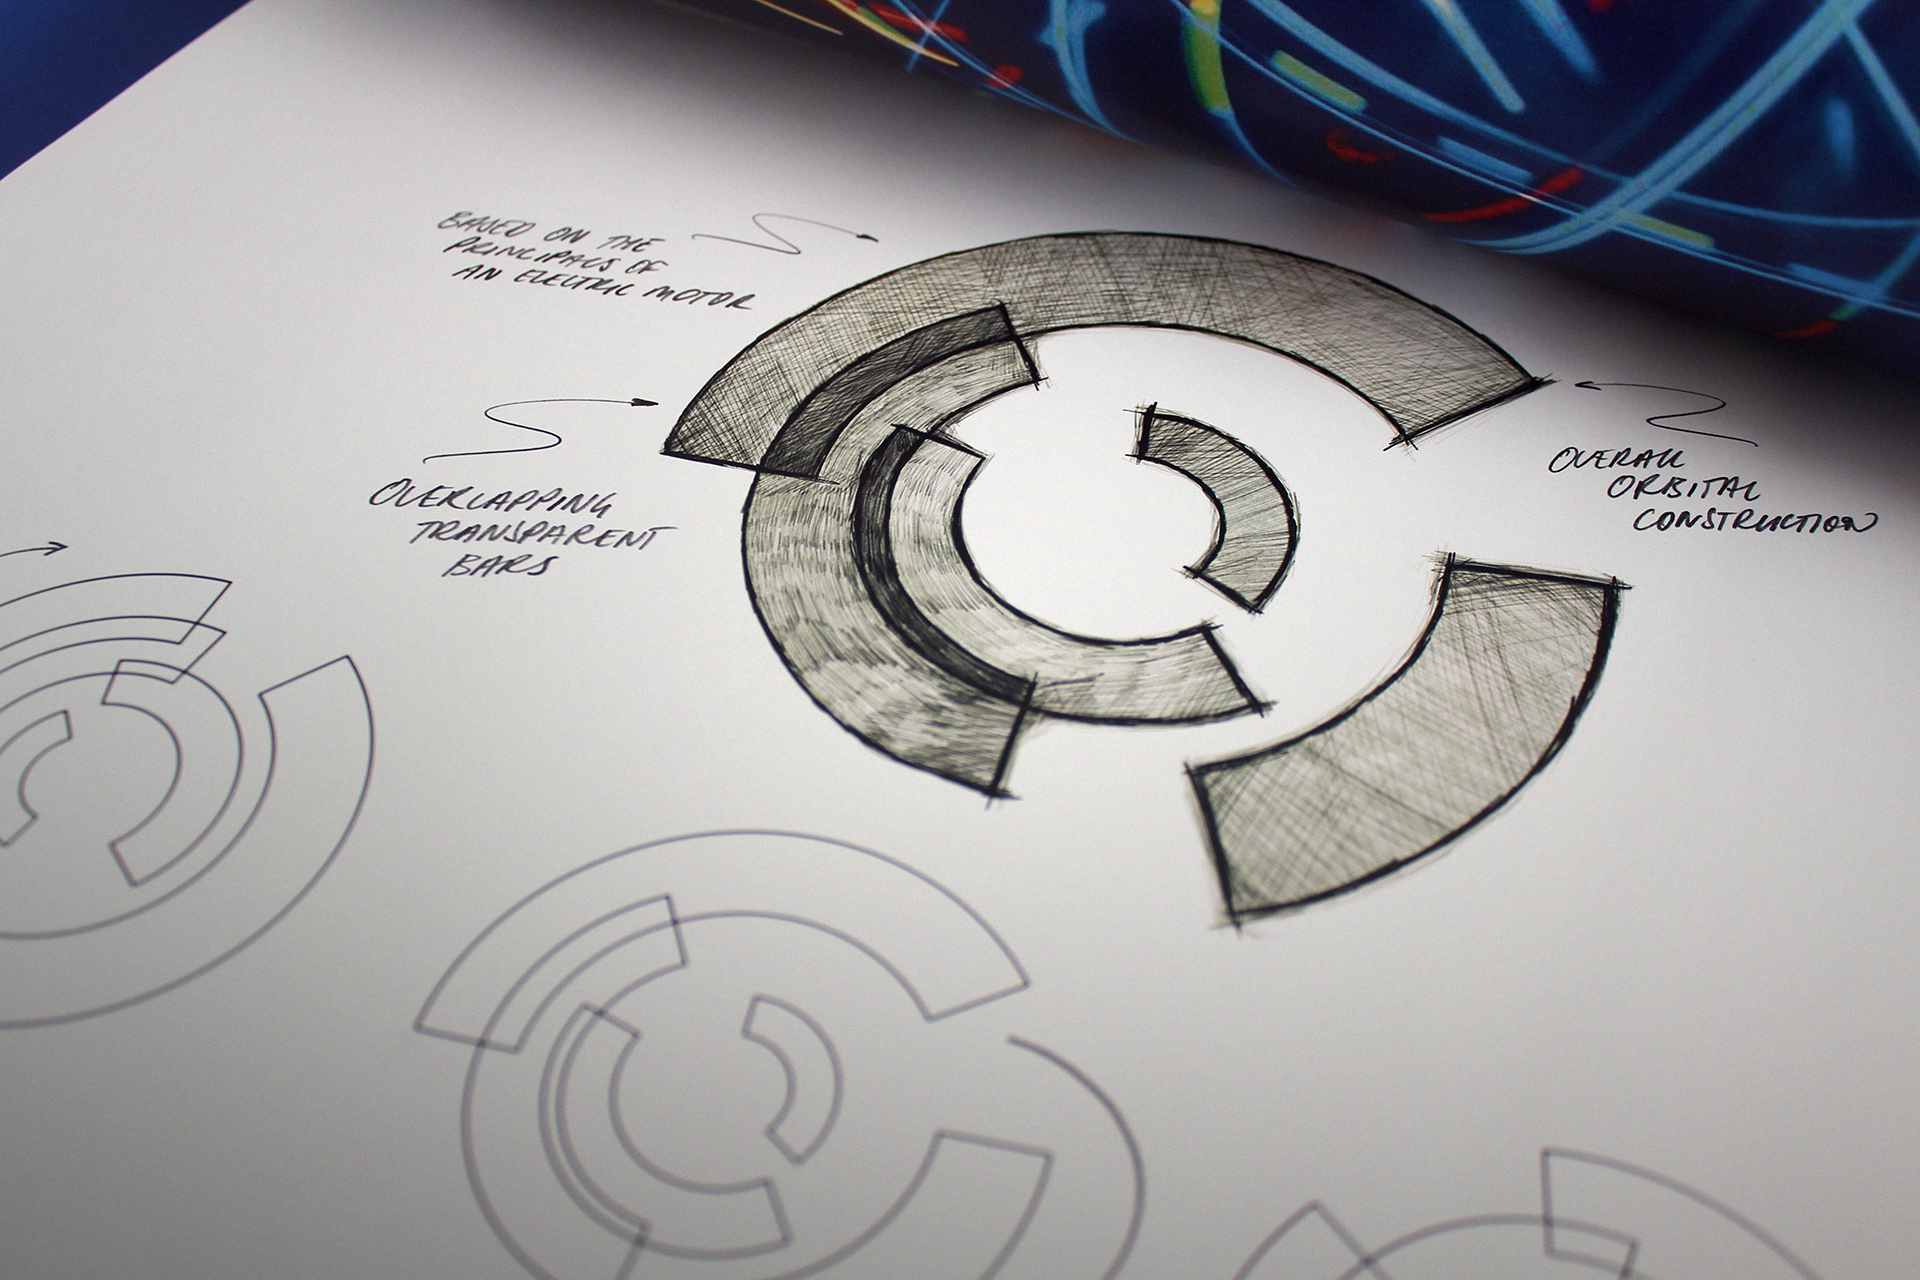 The chosen brand identity was created on the basis of a dynamic identity whereby the brand symbol comprises a variety of harmonious moving parts.